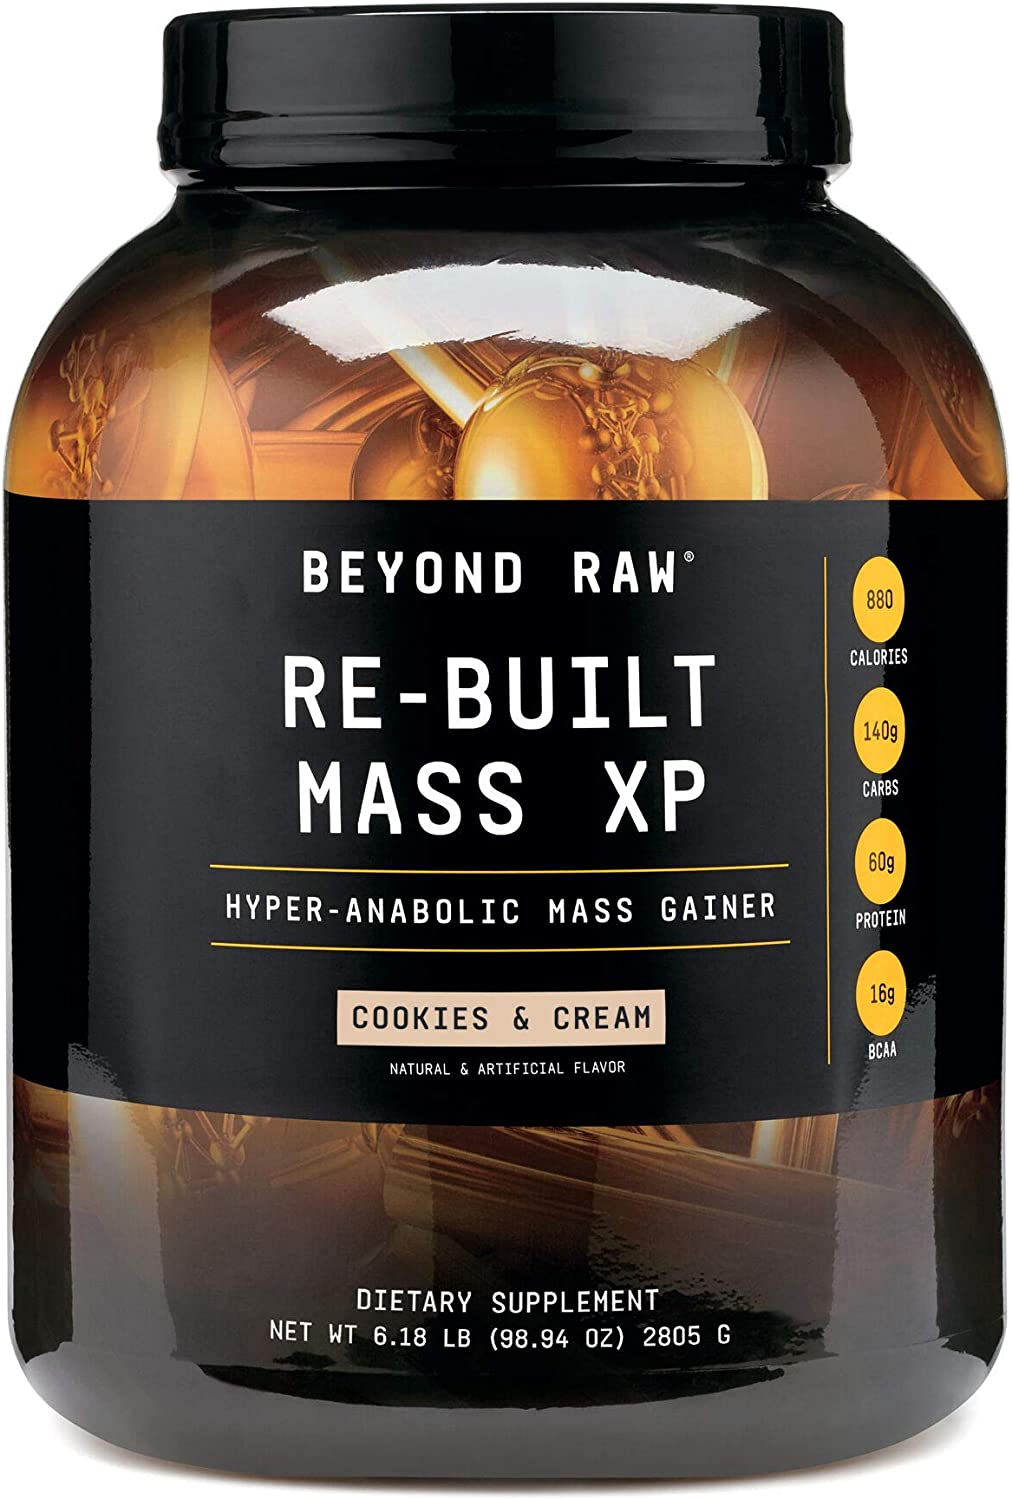 BEYOND RAW Re-Built Mass Hyper-Anabolic Max 90% OFF Gainer shopping Contai XP